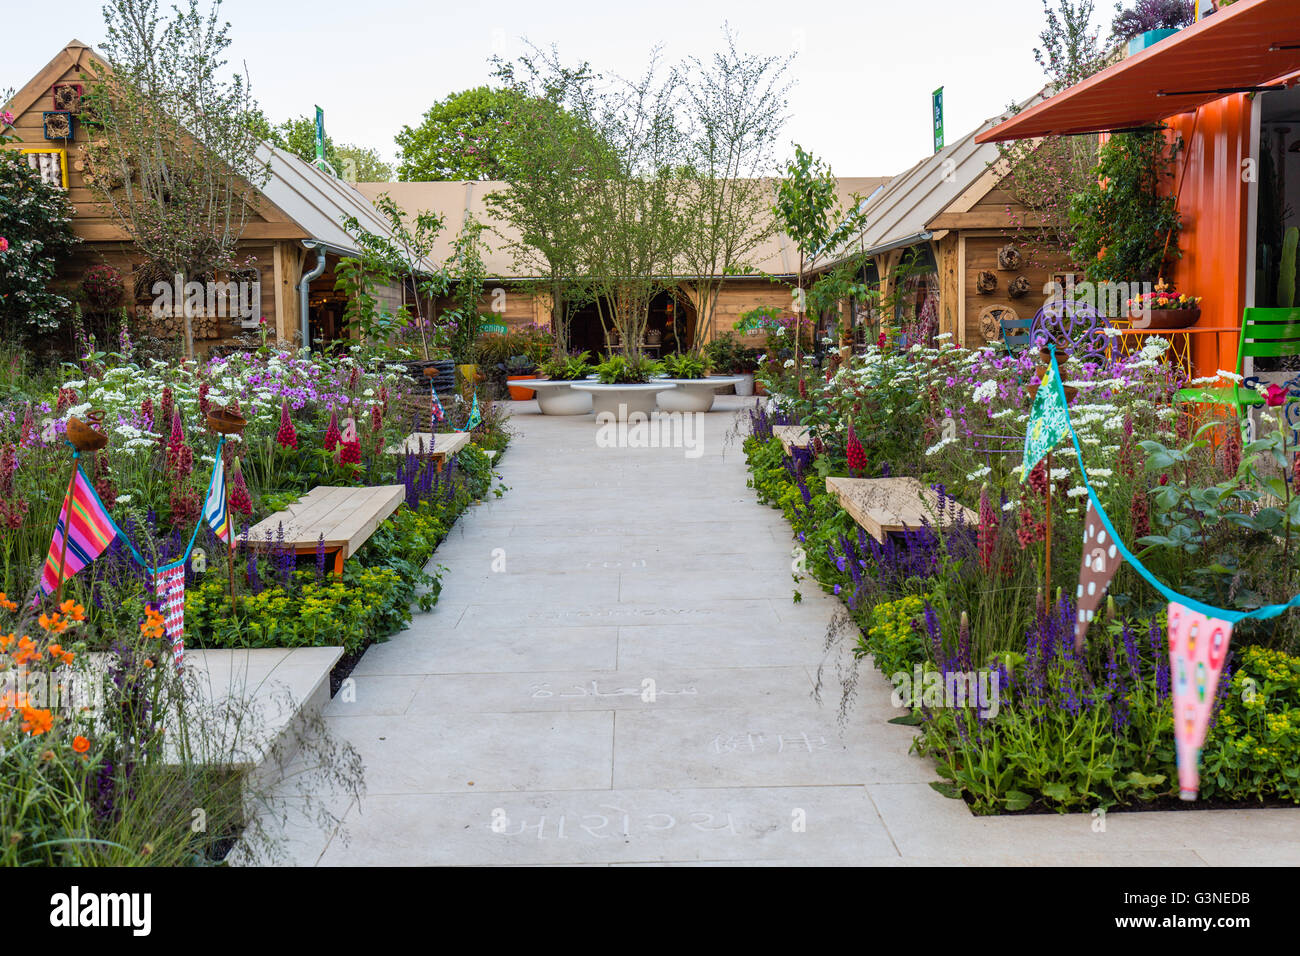 Show Gardens At RHS Chelsea Flower Show 2016. RHS Greening Grey Britain  Garden, Designed